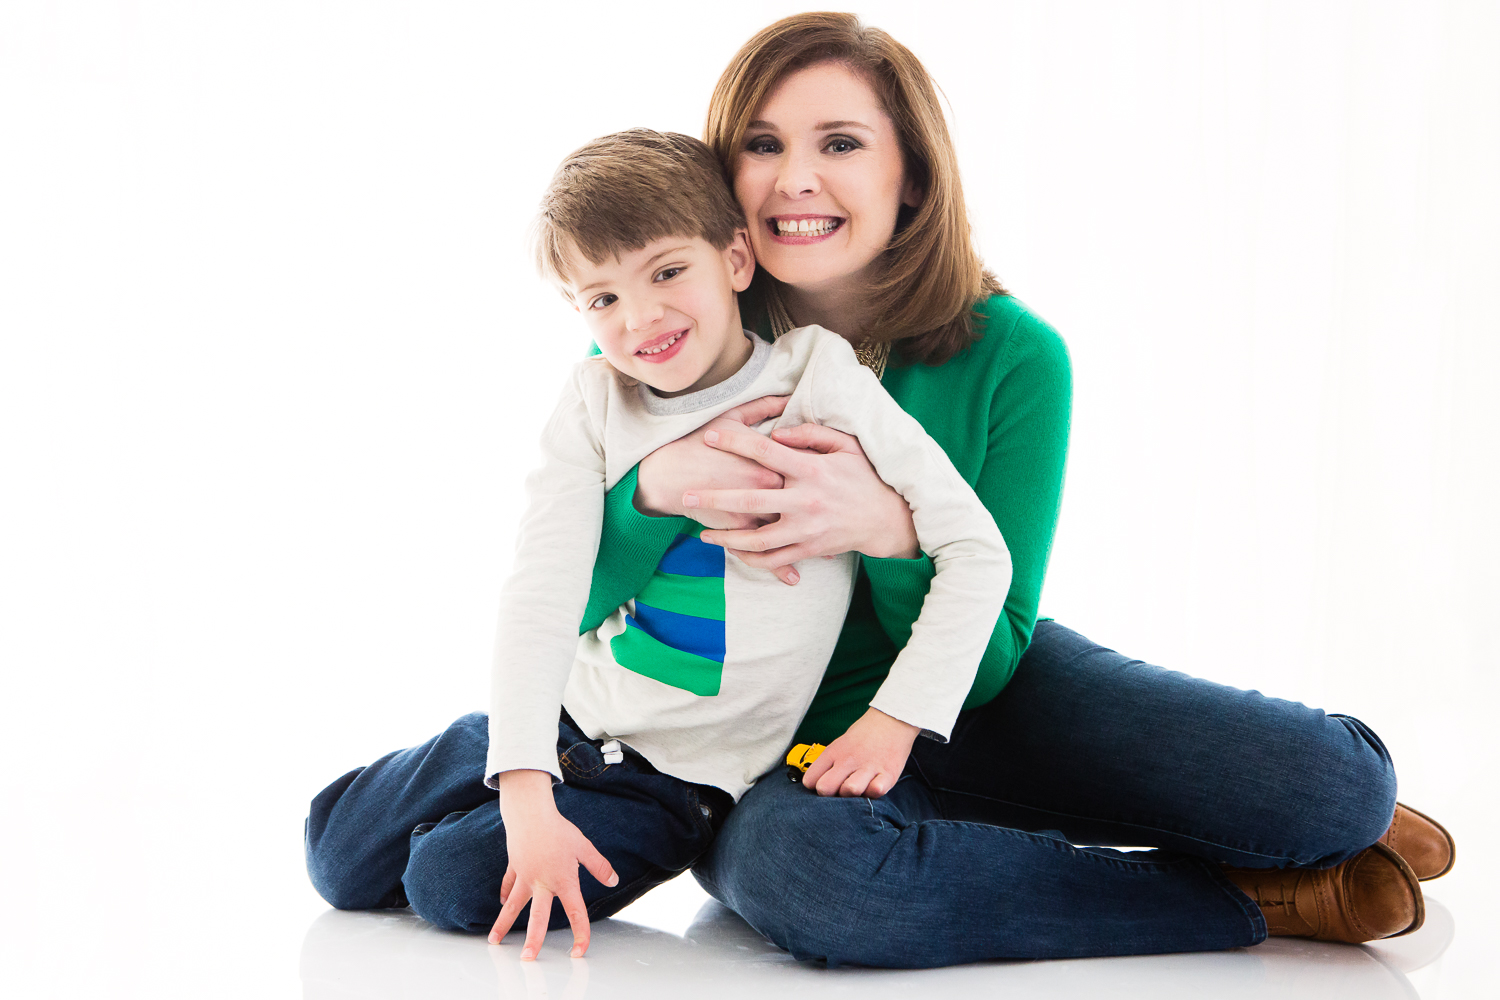 Photograph on white backdrop with an woman and her little boy